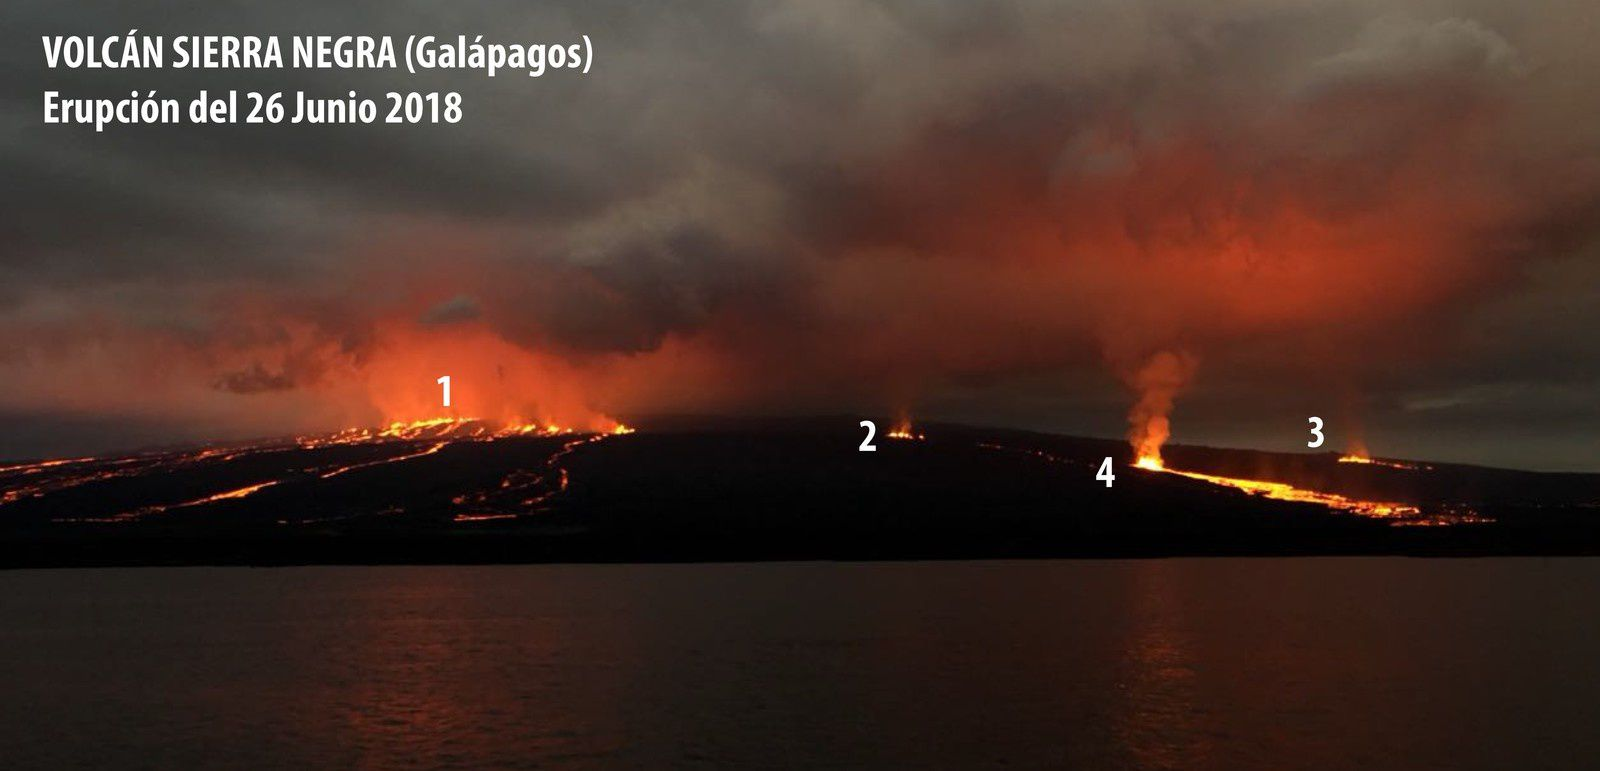 Sierra Negra - picture taken on 26.06.2018 from a boat in the Bahía Elizabeth illustrating the different fissures active to this day - Crack 1: is an opening located at the edge of the caldera (1070 m) in the area of ​​Chico volcano; the cracks are aligned in the west-northwest direction and tangent to the edge of the caldera; they have a length of 4 km and lava flows emitted since the beginning of the eruption, inside and outside the caldera, covered an area of ​​16.1 km2, until June 27, date of cessation of their activity. Fissure 2: located northwest of the caldera, about two kilometers under the edge of it (700 meters). It has a length of about 250 meters and has produced lava flows since the beginning of the eruption, covering an area of ​​2.3 km2 until June 27, when it seems to have completed its activity. It had an extension of about 3 km and its lava did not reach the sea. Crack 3: located west of the caldera. This crack is about 250 meters long and has been active since the beginning of the eruption, emitting lava flows that covered an area of ​​about 0.3 km2 until June 27 when it apparently concluded its activity . The lava flows had an extension of about 2 km and their lava did not reach the sea. Fissure 4: was the most active, and since the beginning of the eruption has been continuously lava flows. It is located on the northwest flank (100 m) 8 km downstream from the caldera edge. Until July 16, its lavas covered an area of ​​11.6 km2 which continues to grow at the time of publication of this report. Between 9 and 10 July, lava flows from this fissure reached the ocean and changed the Ecuadorian coast. Until 16 July, the Ecuadorian territory has increased by 0.93 km².